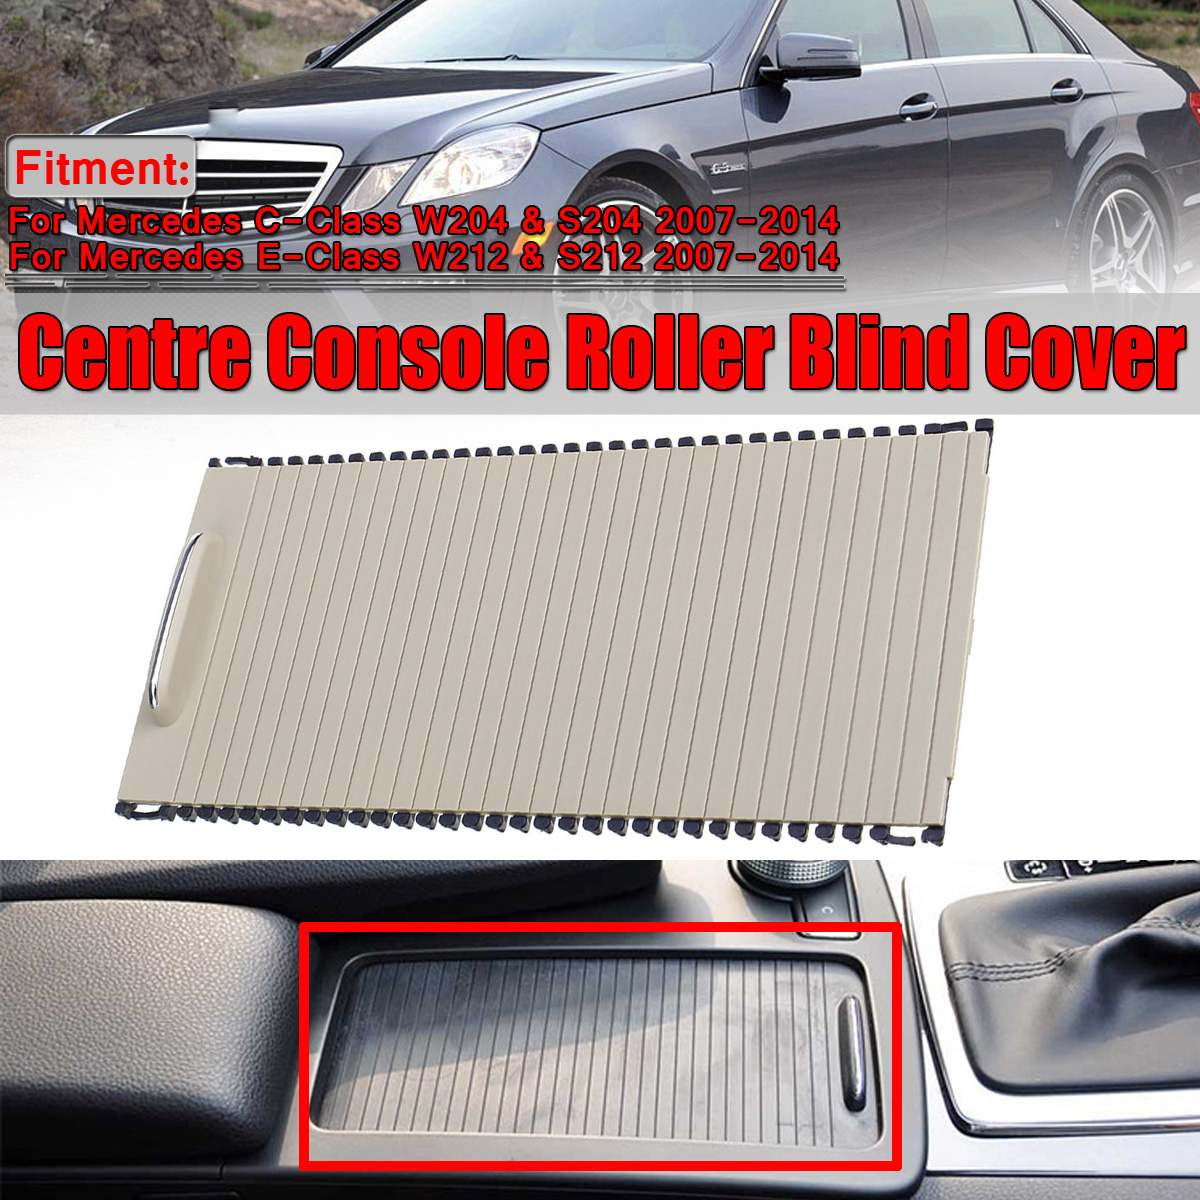 New Roller Blinds W212 Center Console Cover For Benz C/E-Class W204 S204 E CLass S212 Car Water Cup Rack Roller A20468047089051New Roller Blinds W212 Center Console Cover For Benz C/E-Class W204 S204 E CLass S212 Car Water Cup Rack Roller A20468047089051